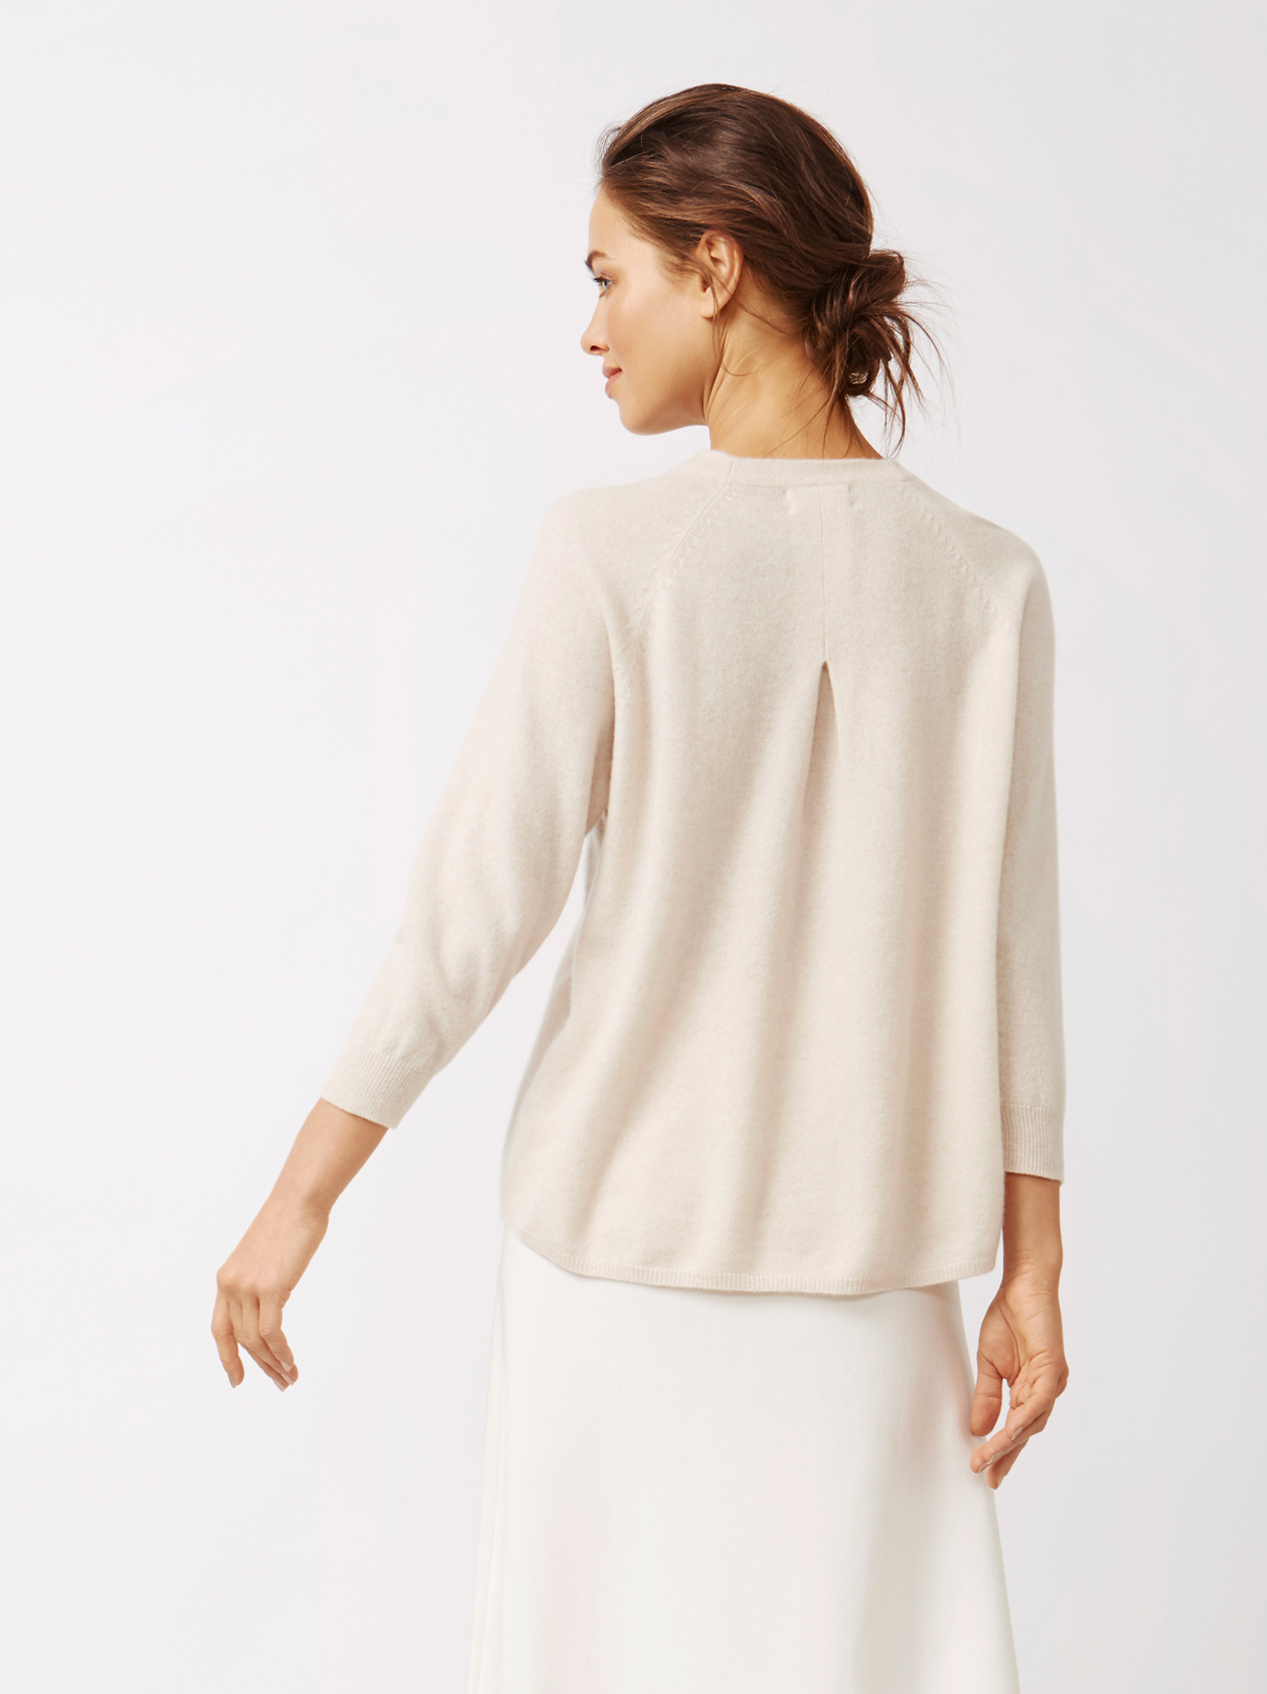 Soft Goat Women's Rounded Sweater Beige